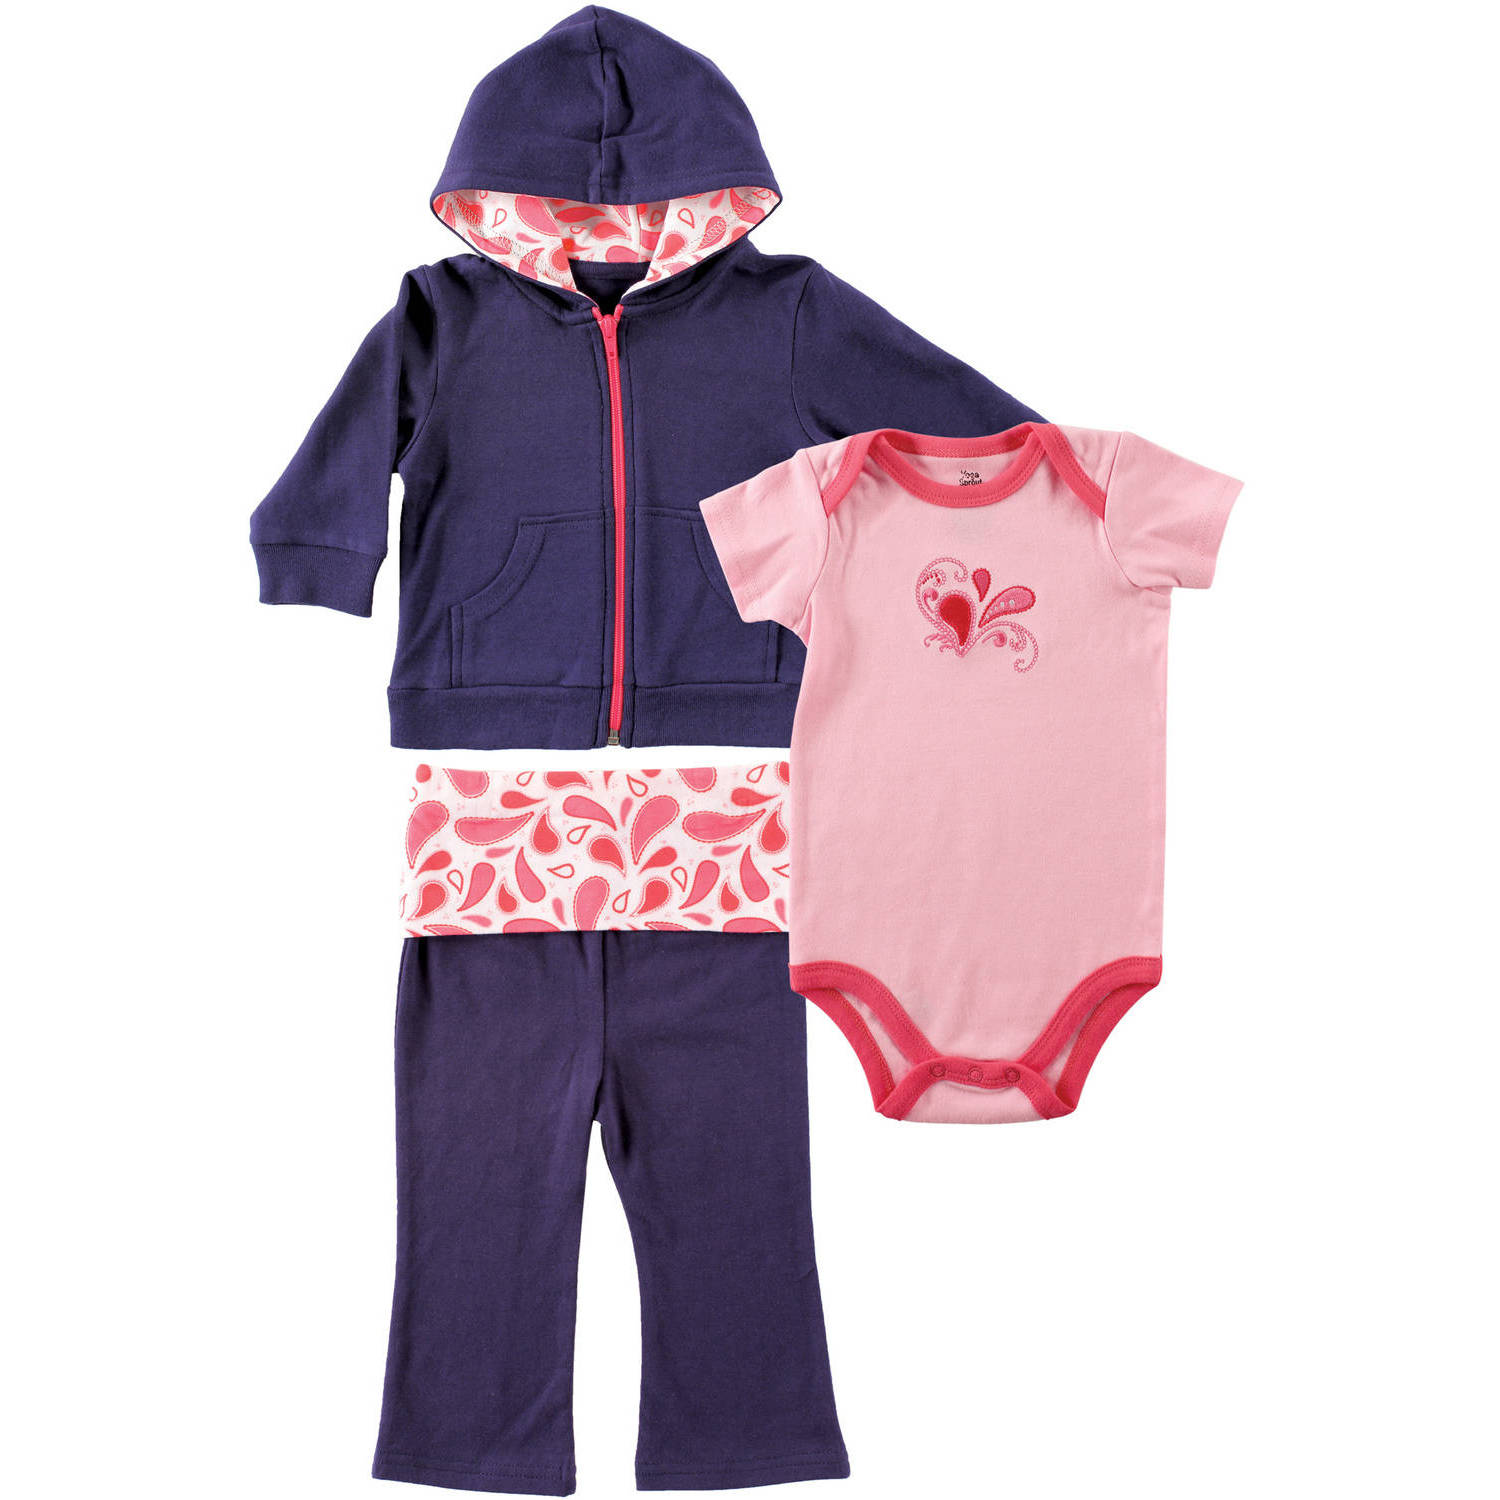 Yoga Sprout Newborn Baby Girls Paisley Hoodie, Bodysuit & Pants Set